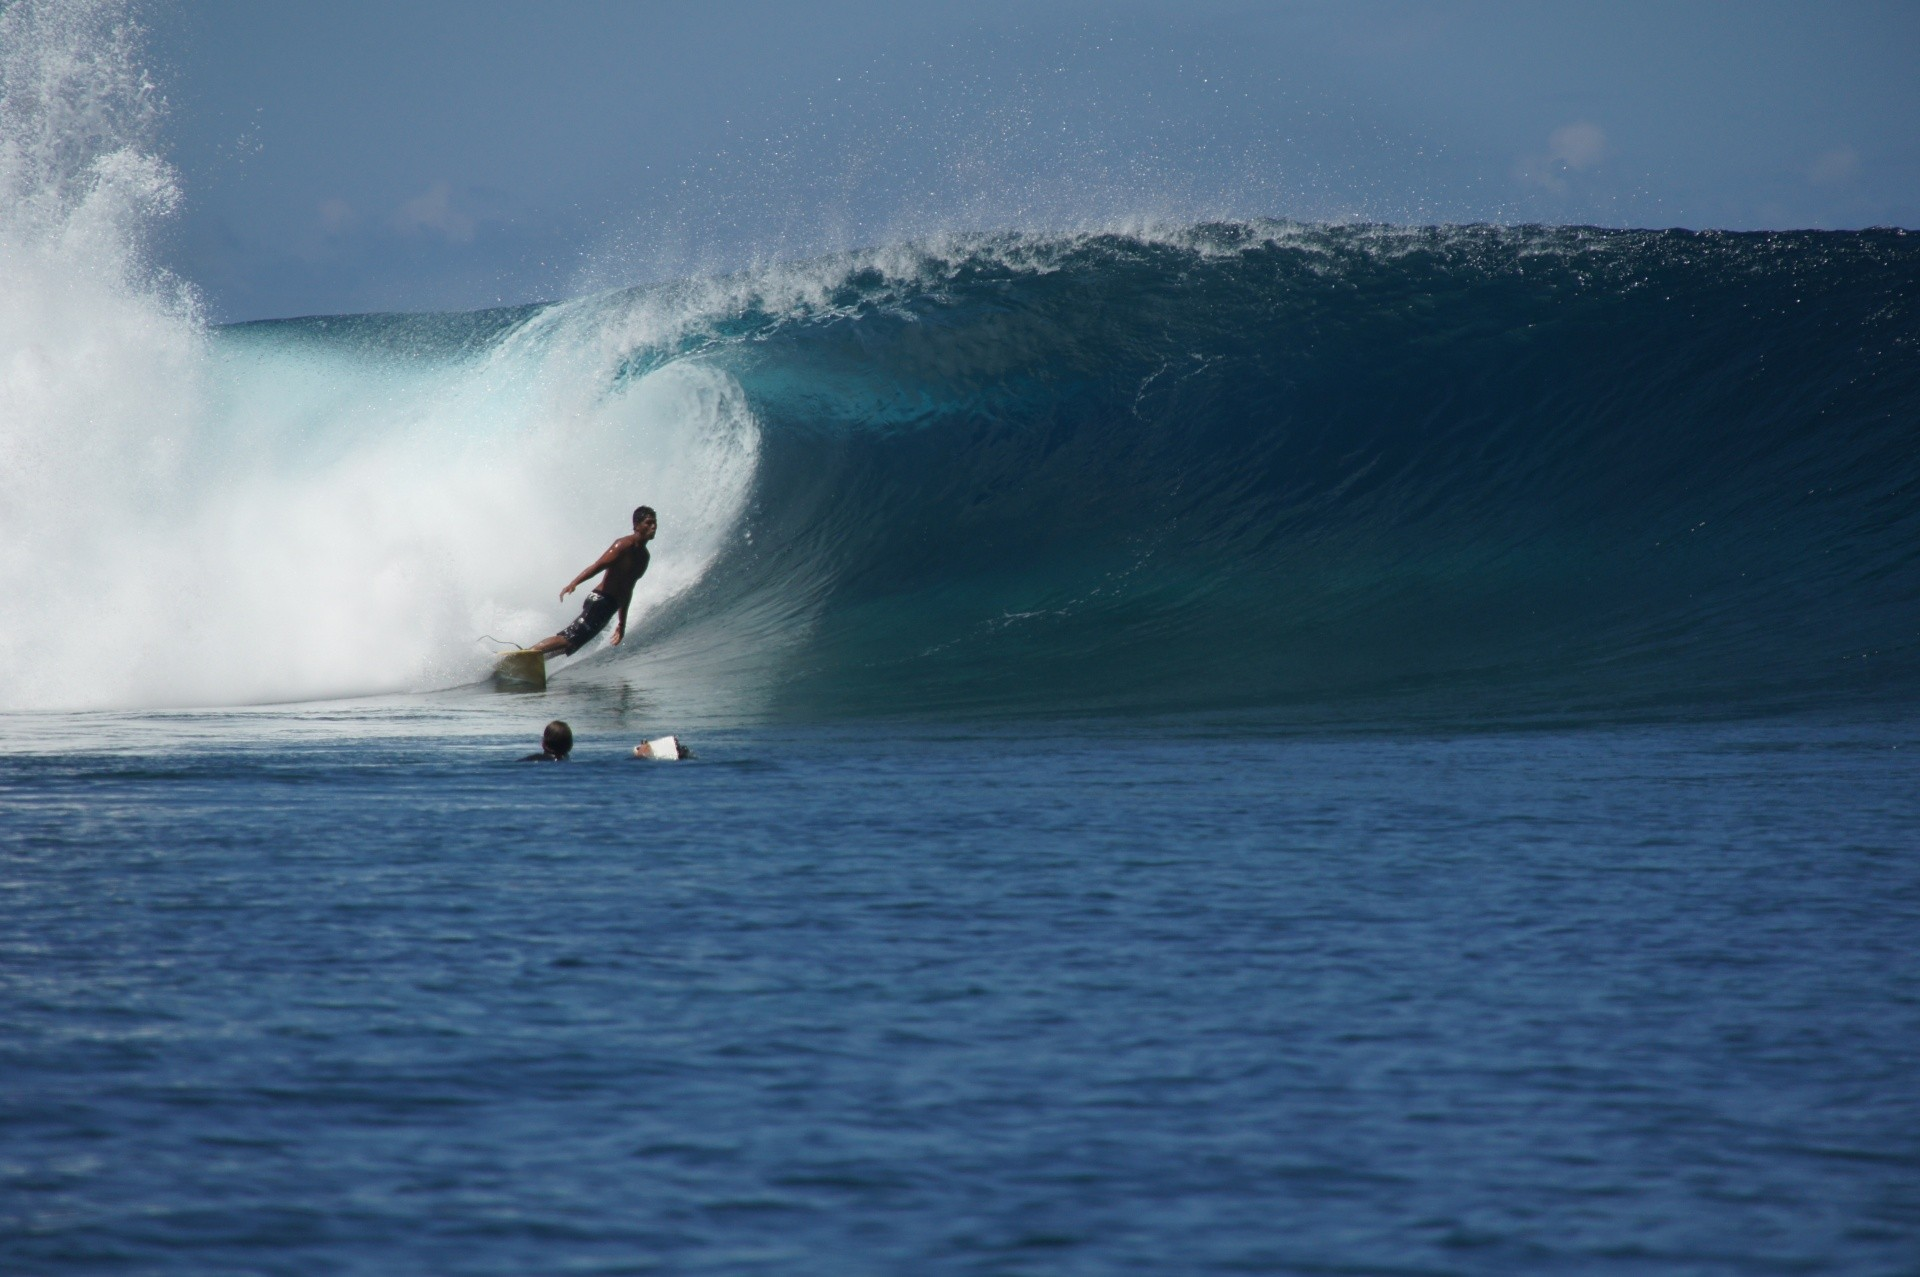 haunui's photo of Teahupoo